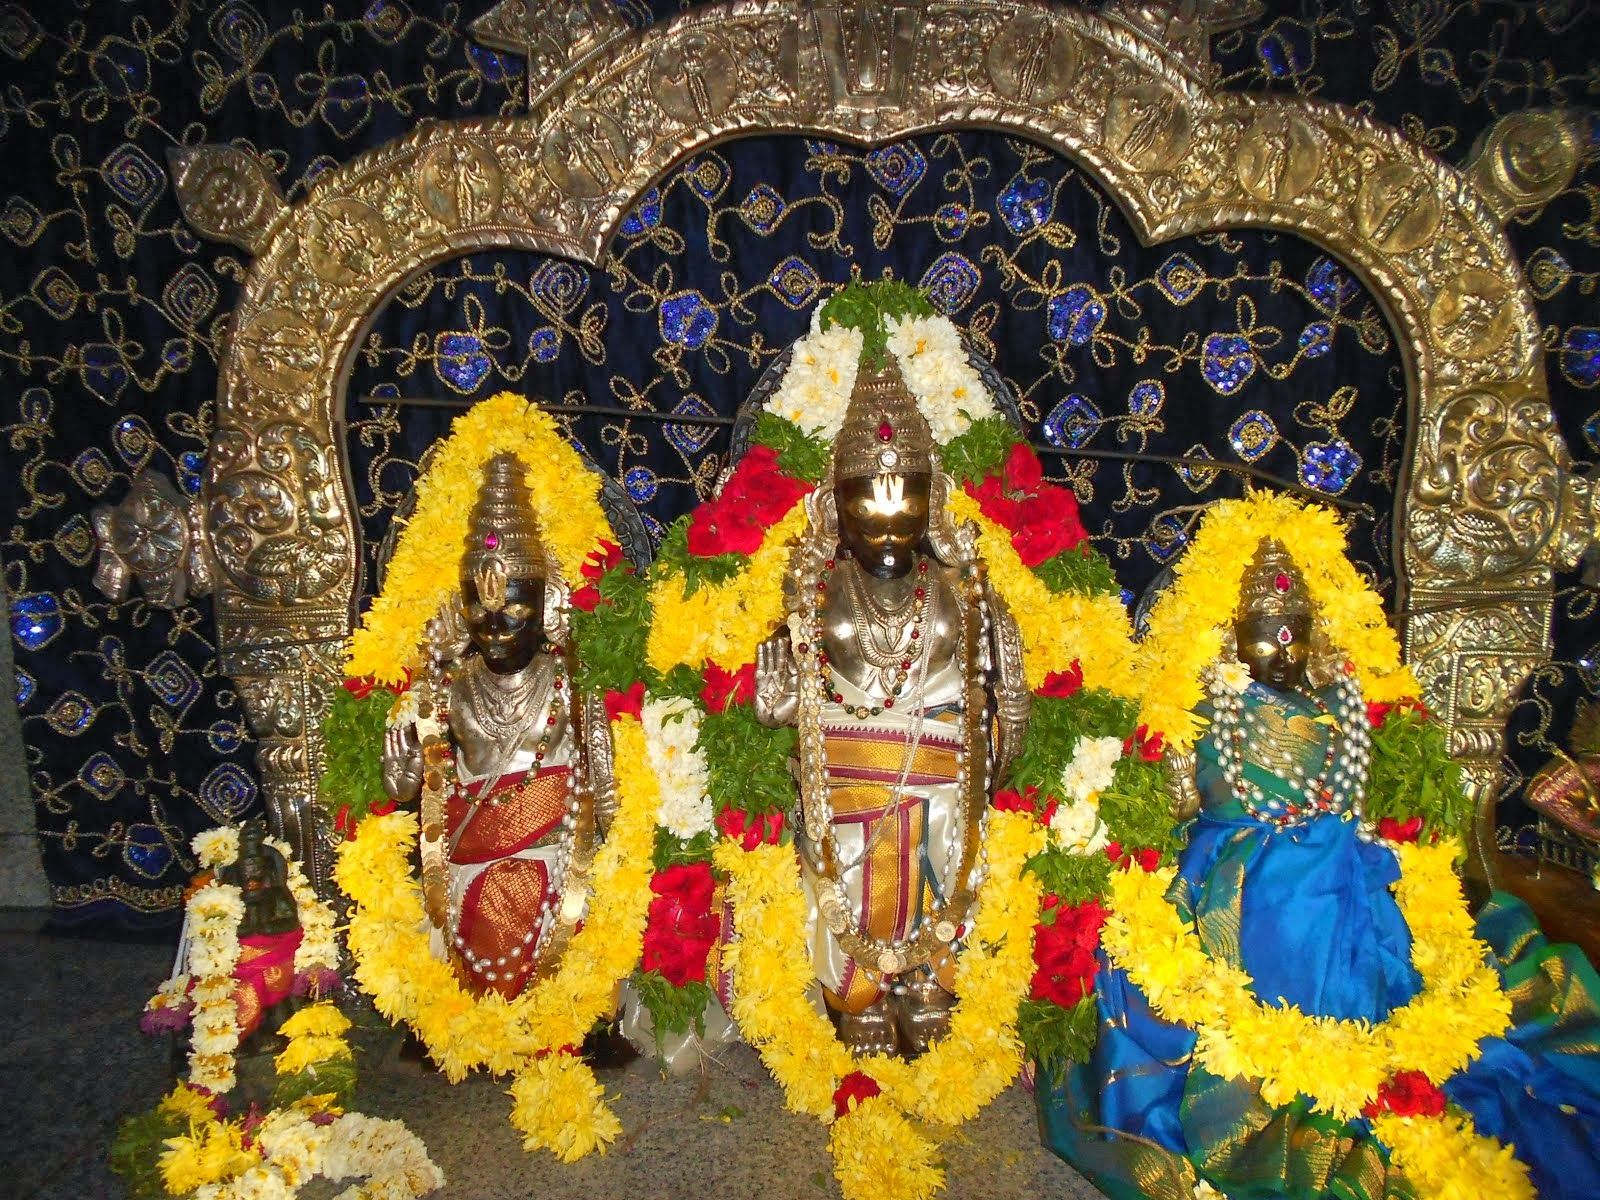 12 best ornaments of lord venkateswara images on pinterest